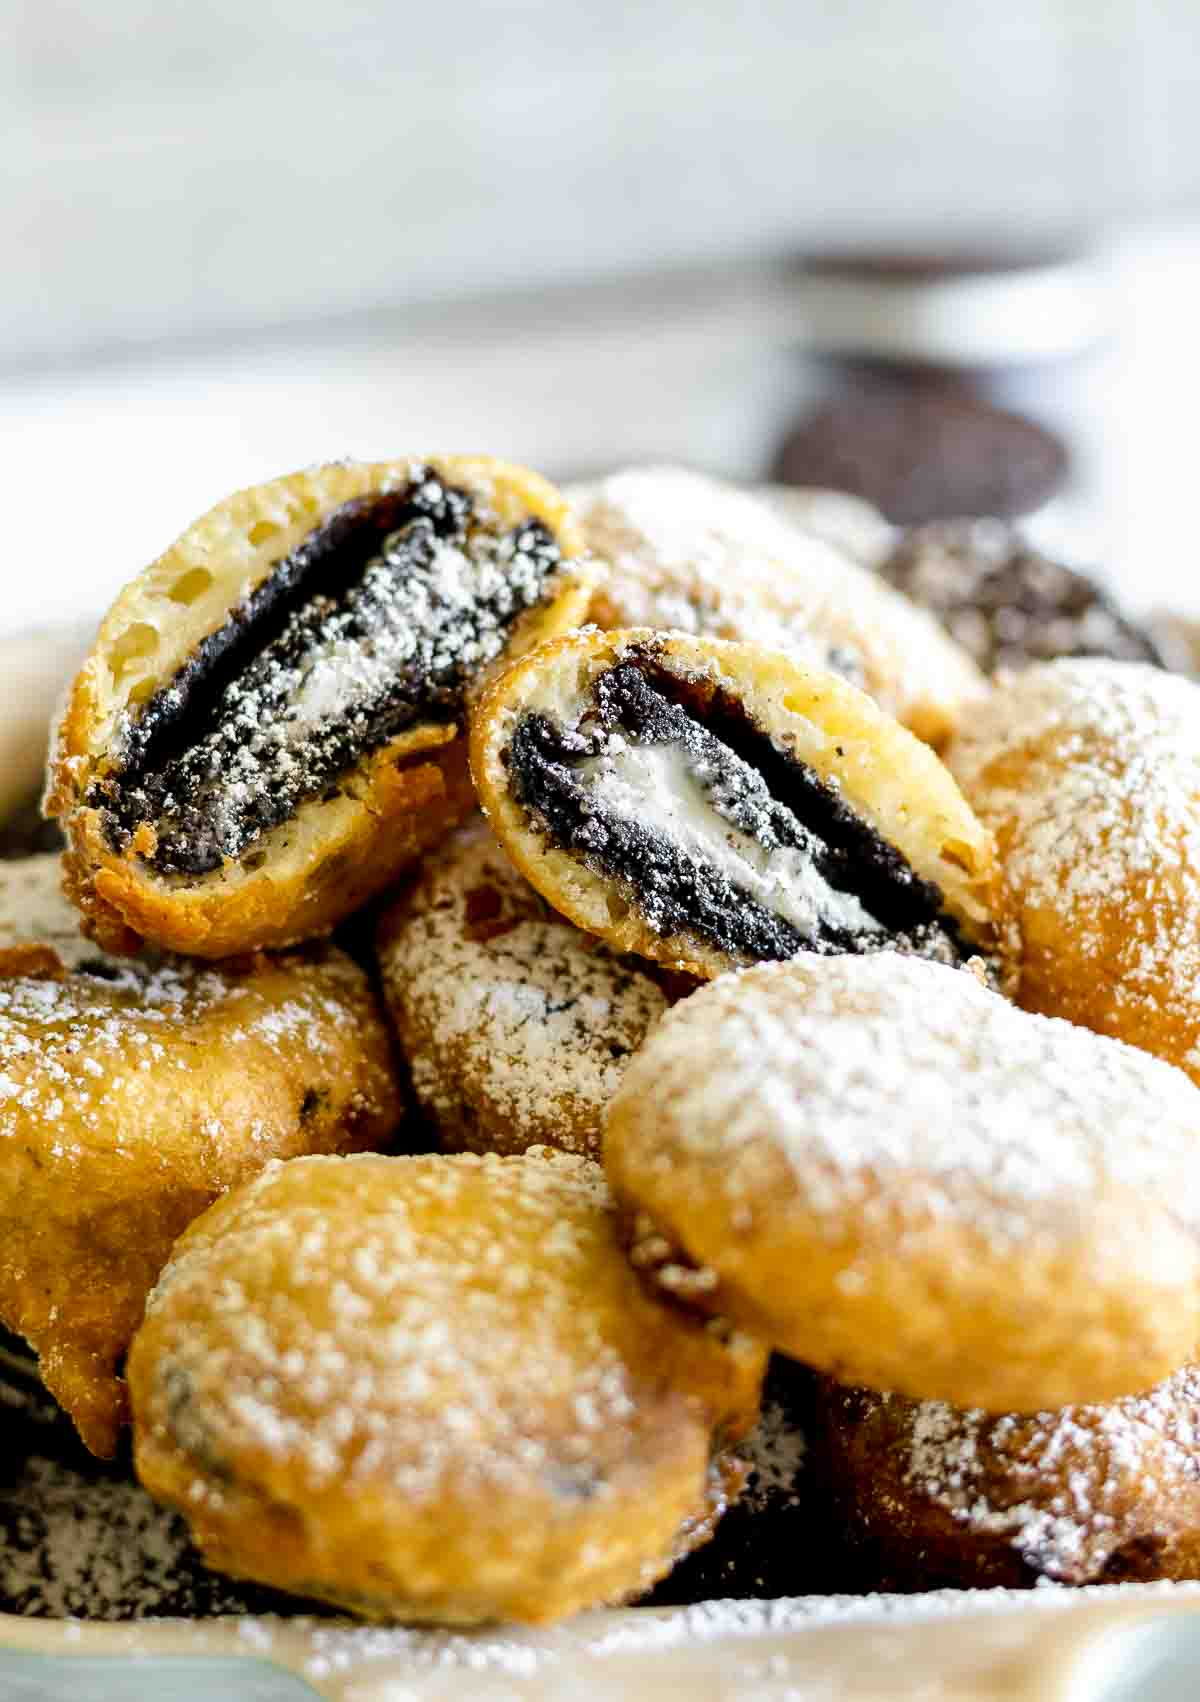 The inside of a deep fried Oreo cookie dusted with powdered sugar.